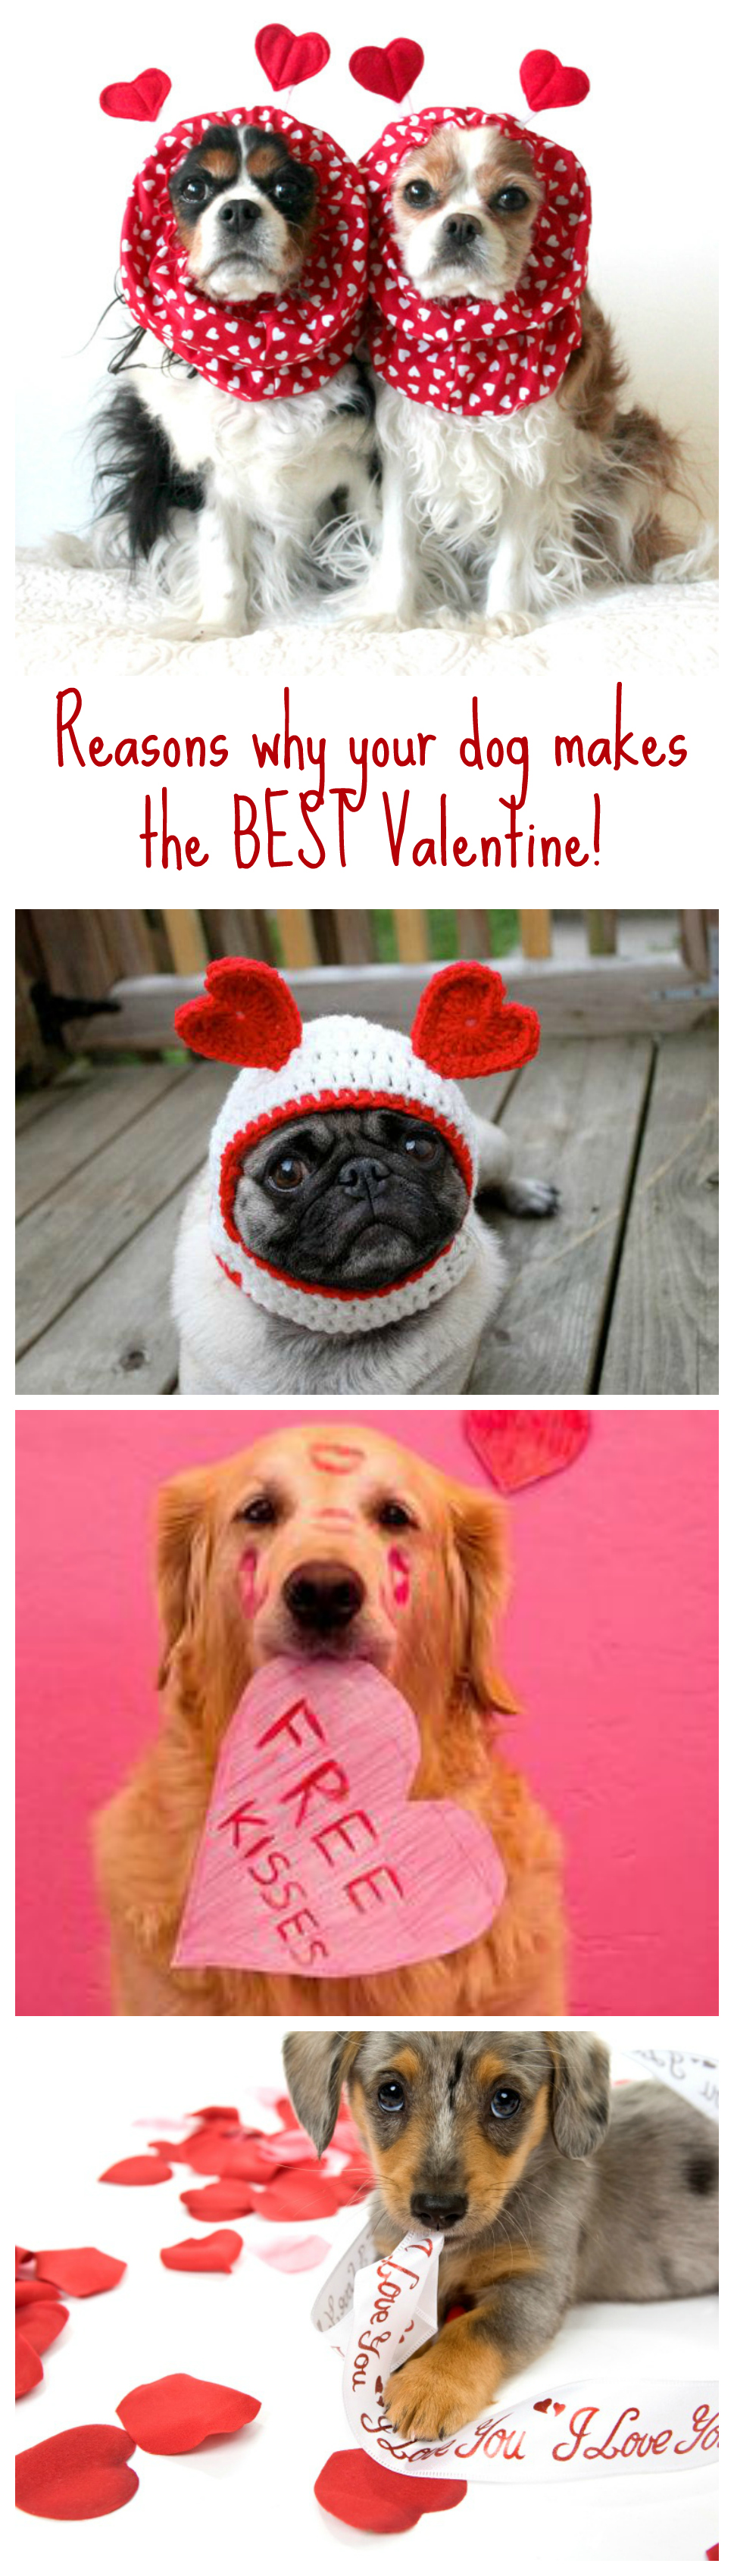 Club Dogue Dog Blog Dogue Valentines Day Dog Cute Cats And Dogs Dog Valentines